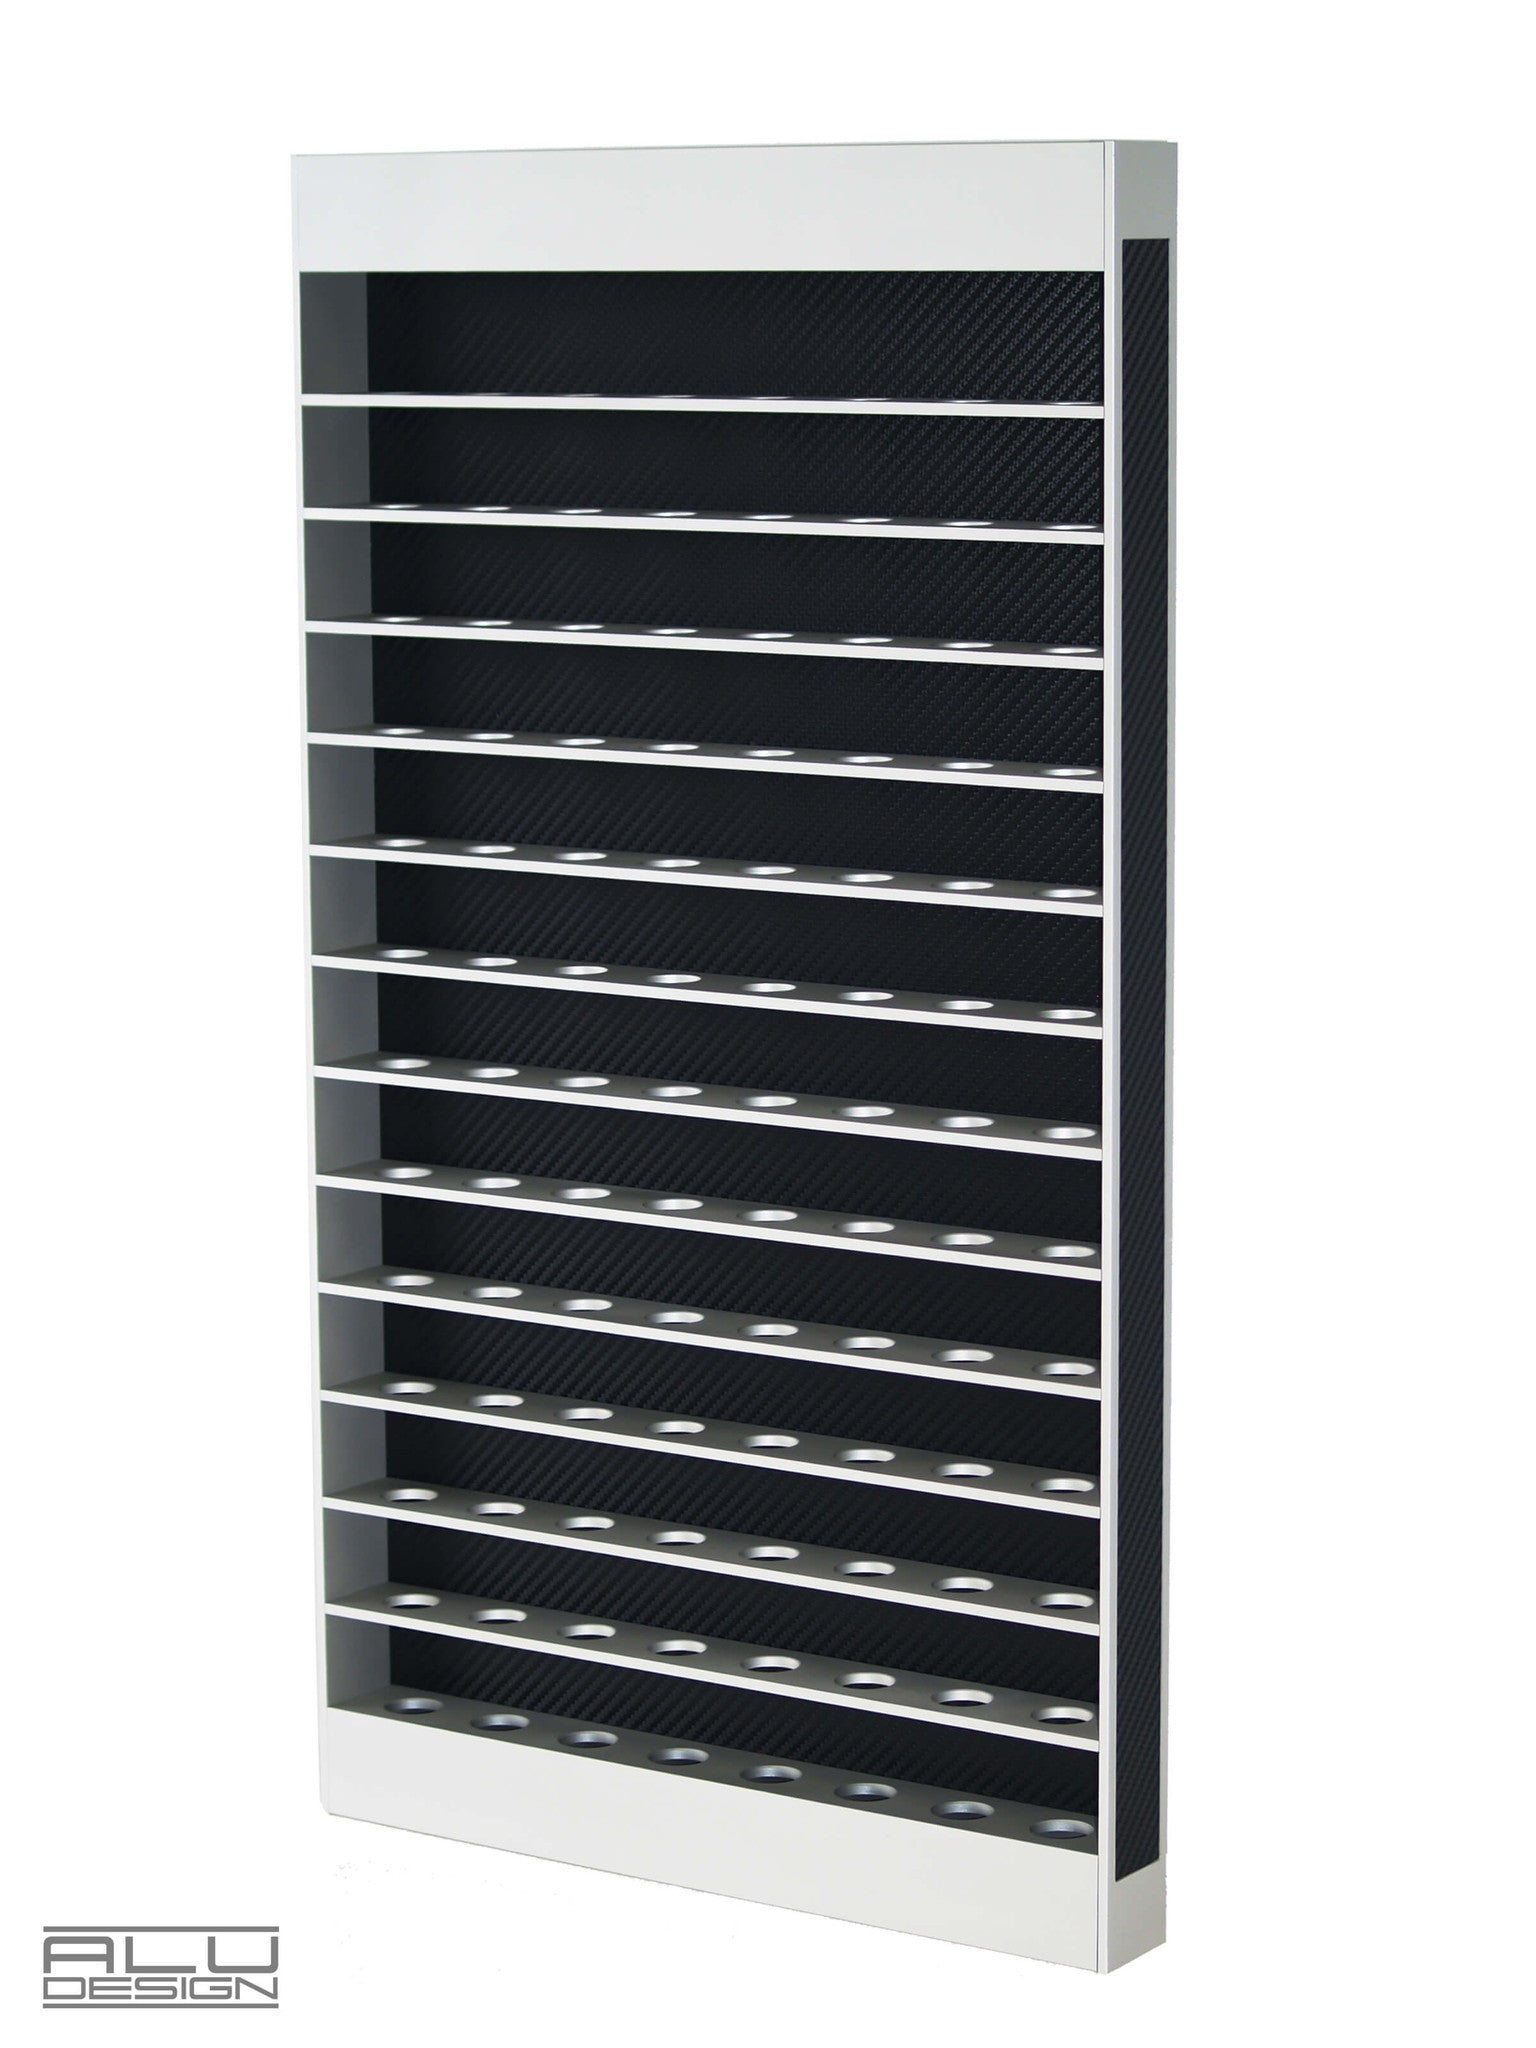 Charmant ... Golf Ball Display Rack (64 Balls)   Cabinet Holder Rack Aluminum   12  ...